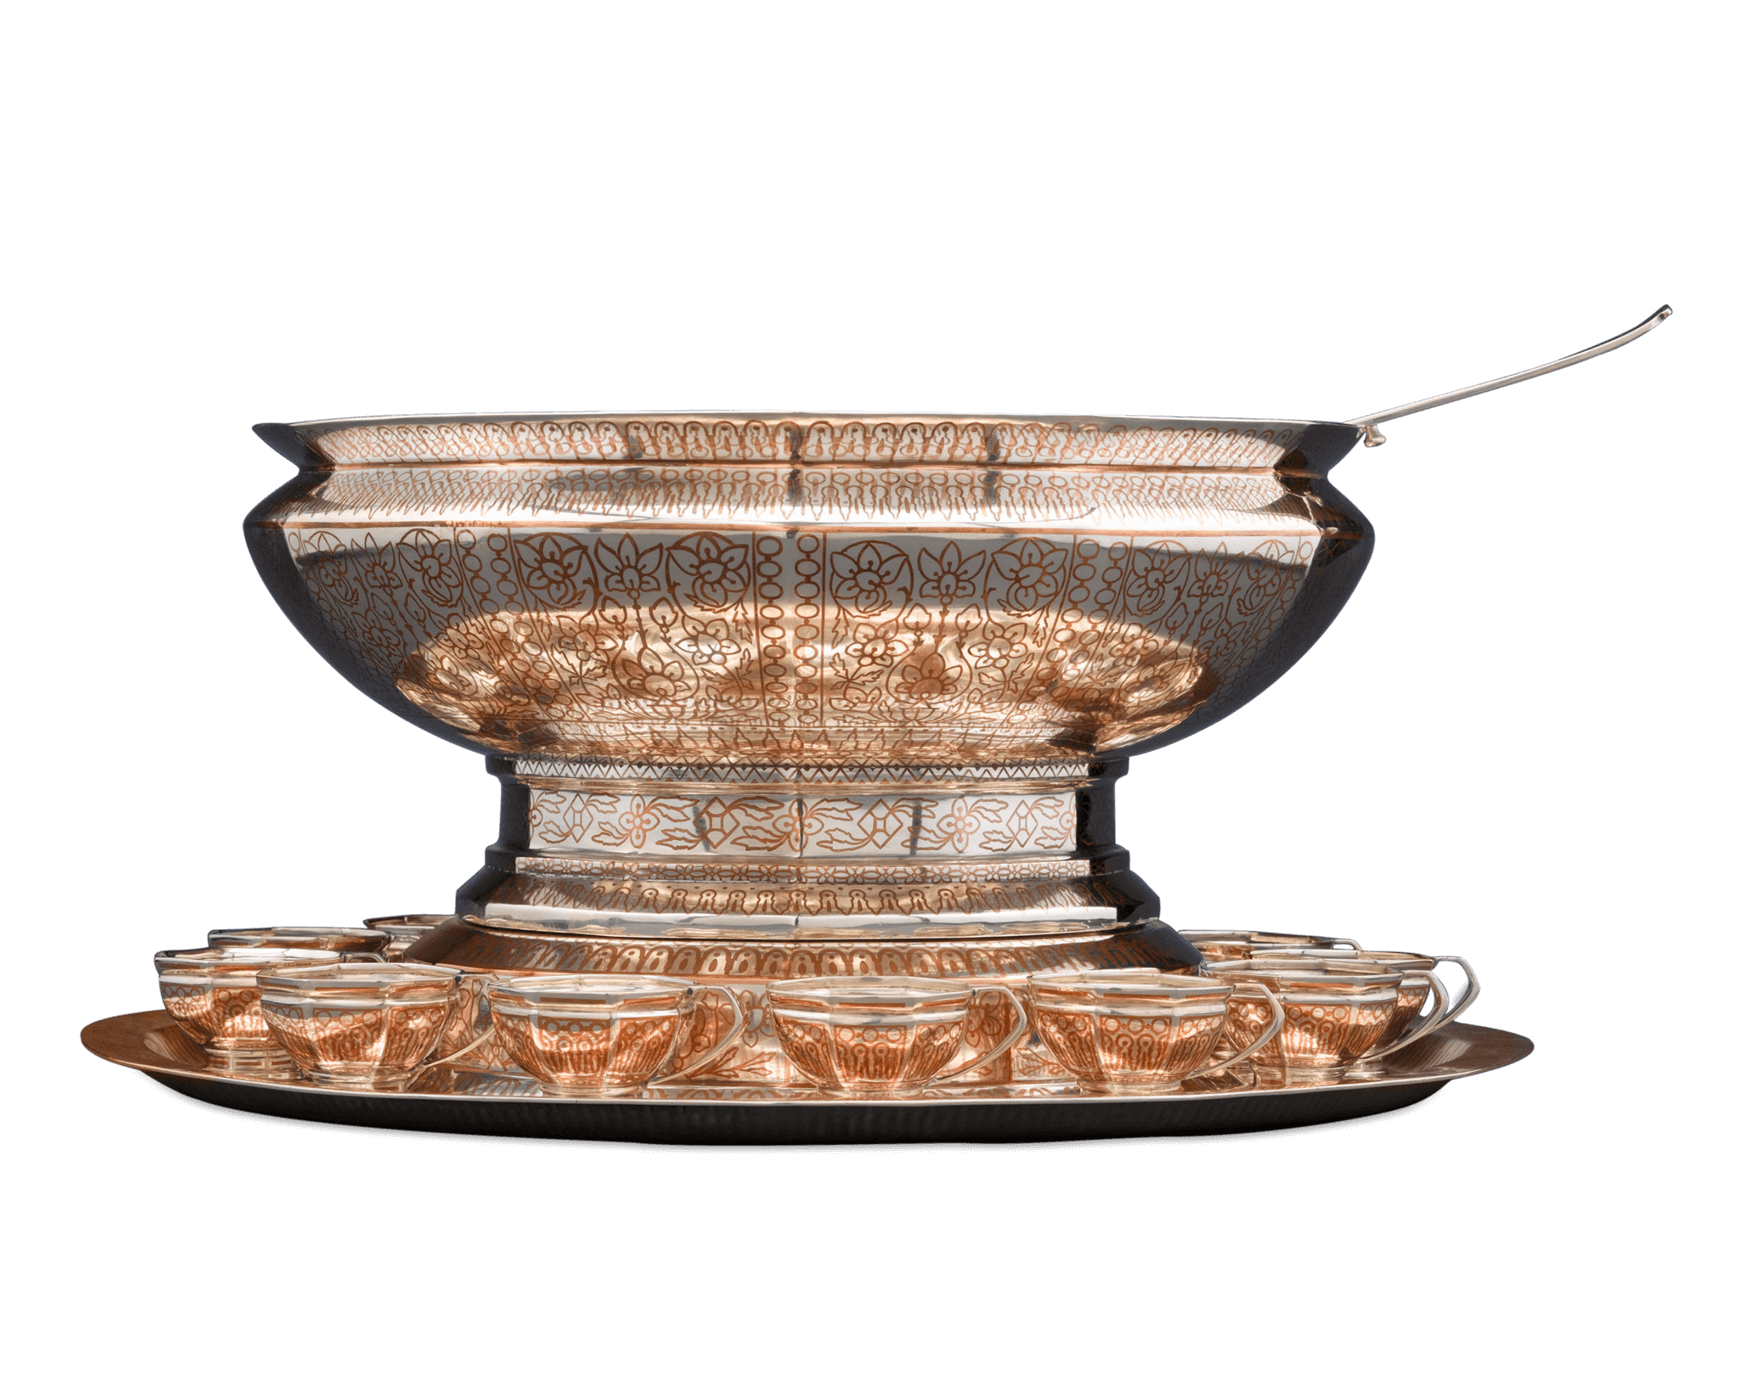 Punch bowl png. Tiffany copper inlaid antique